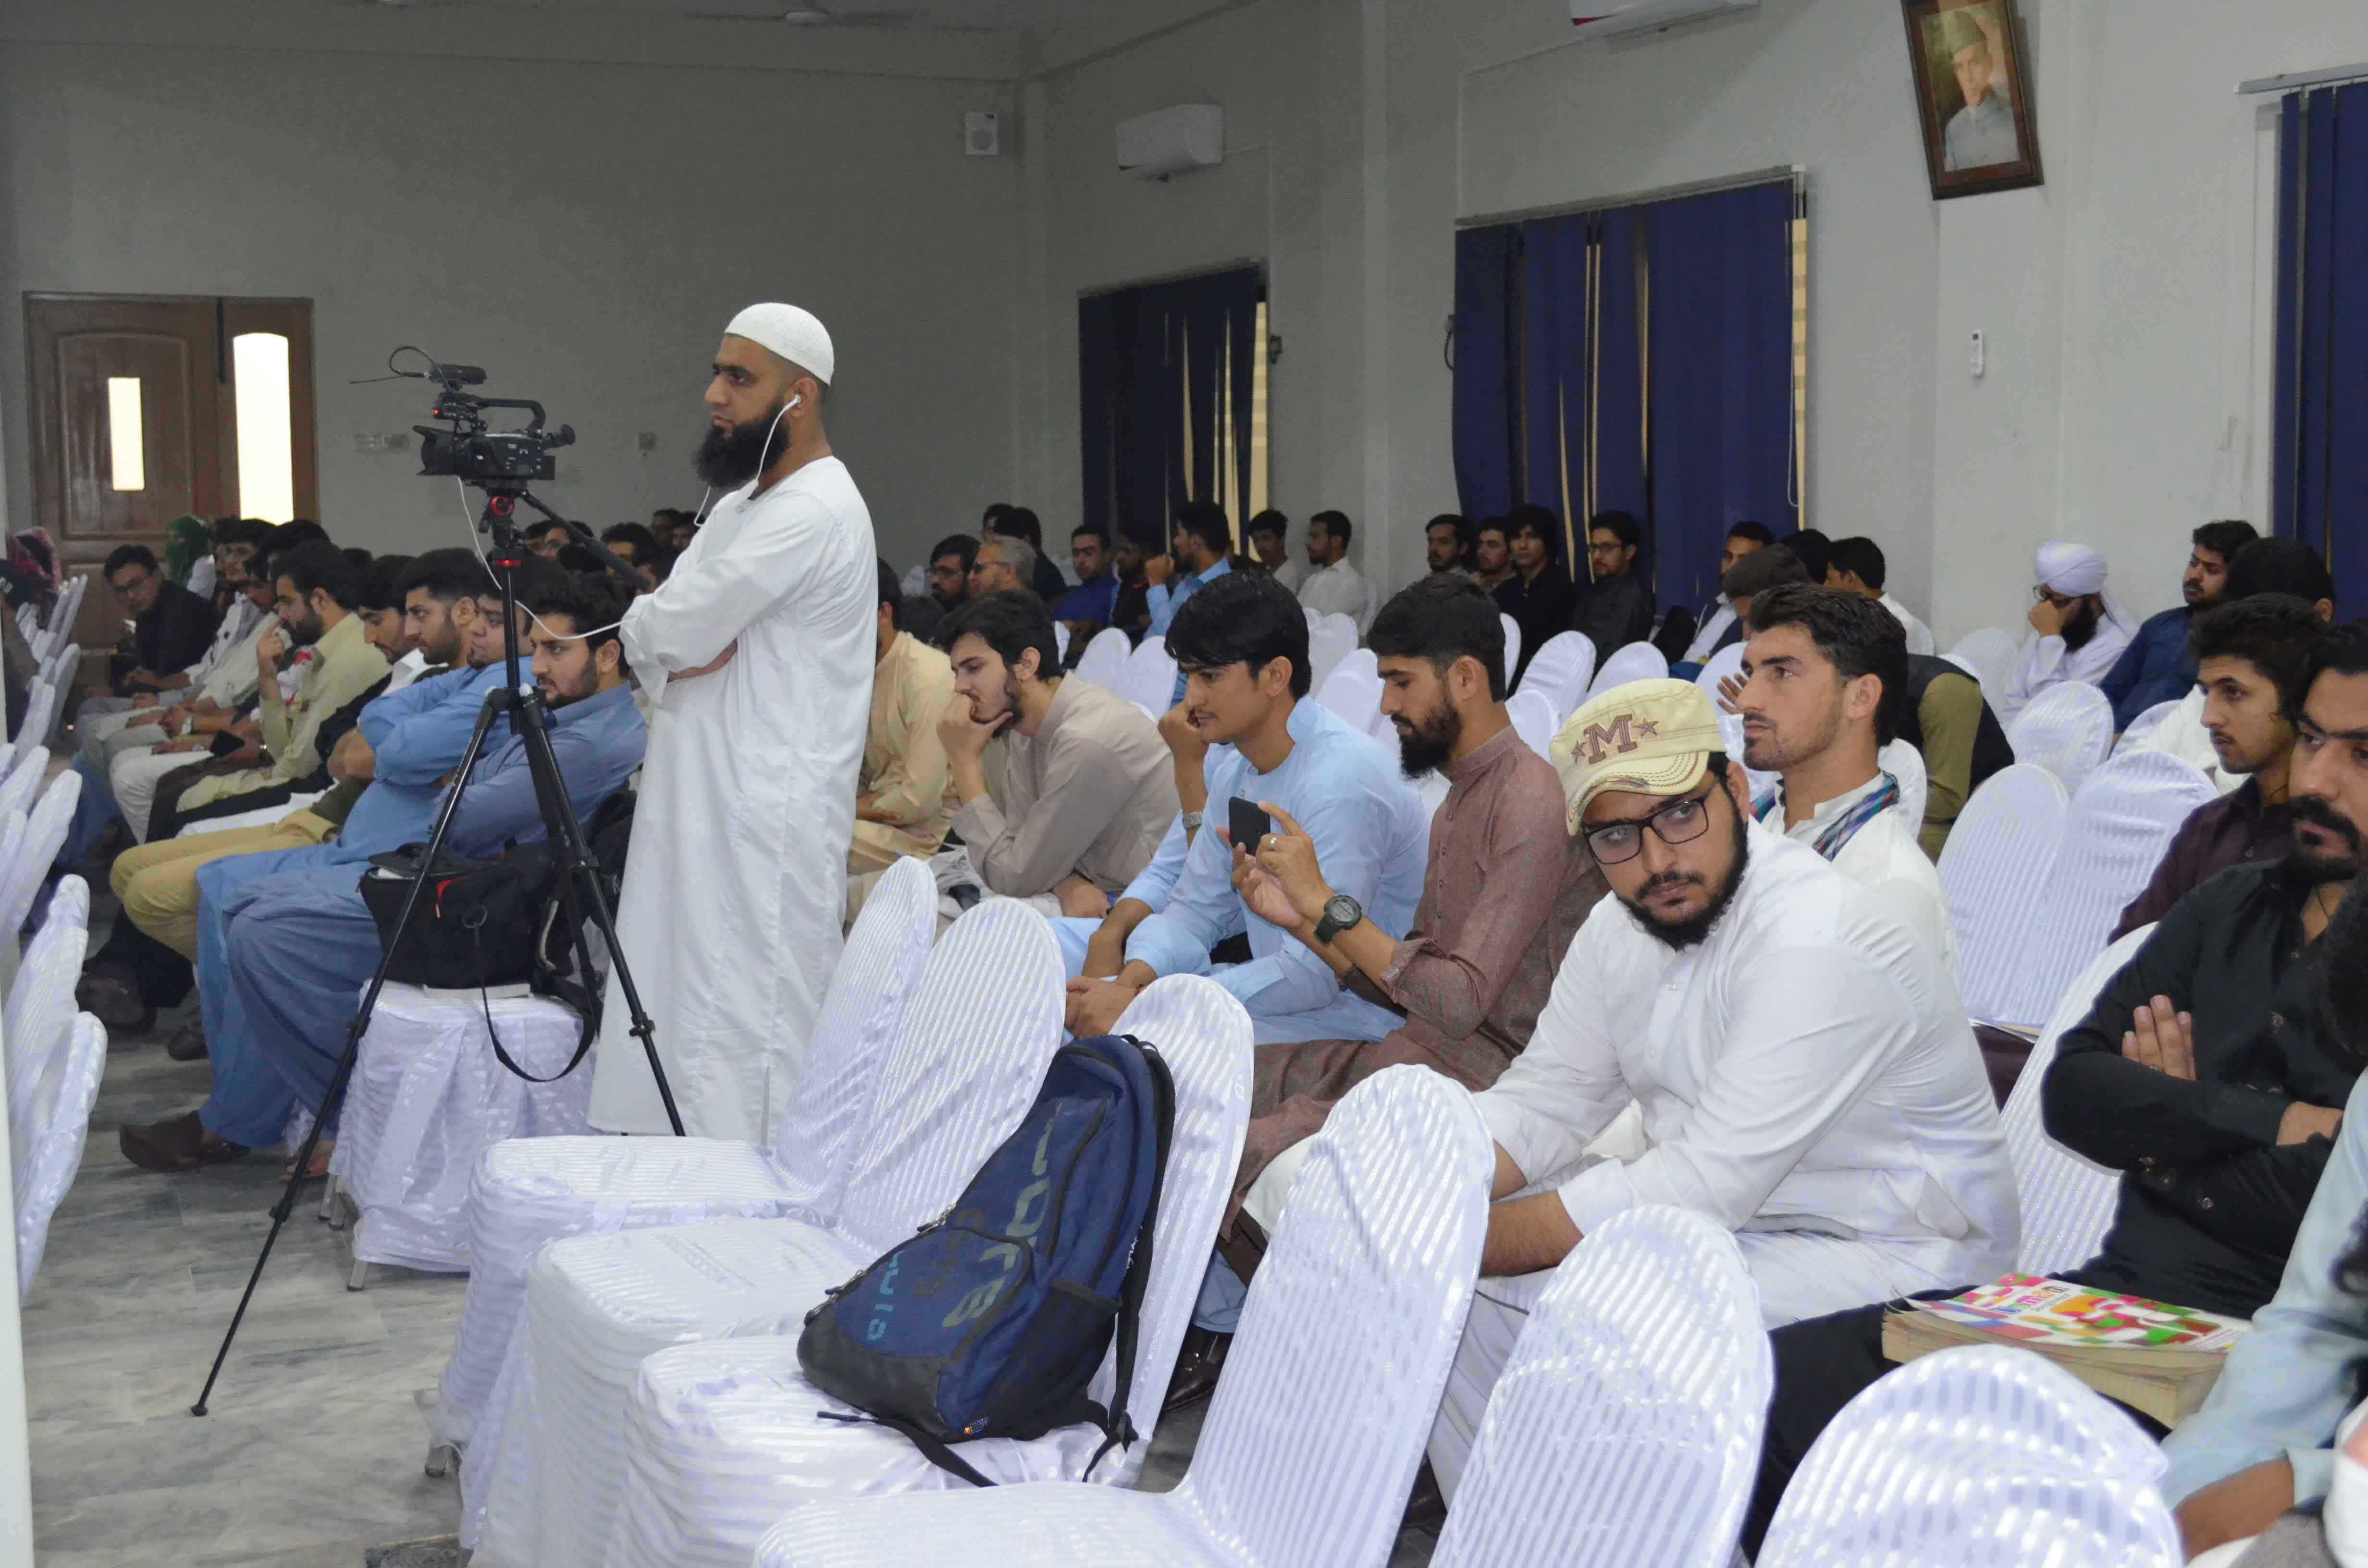 The Revival of the Soul an Inspirational speech by Shaykh Tauqeer